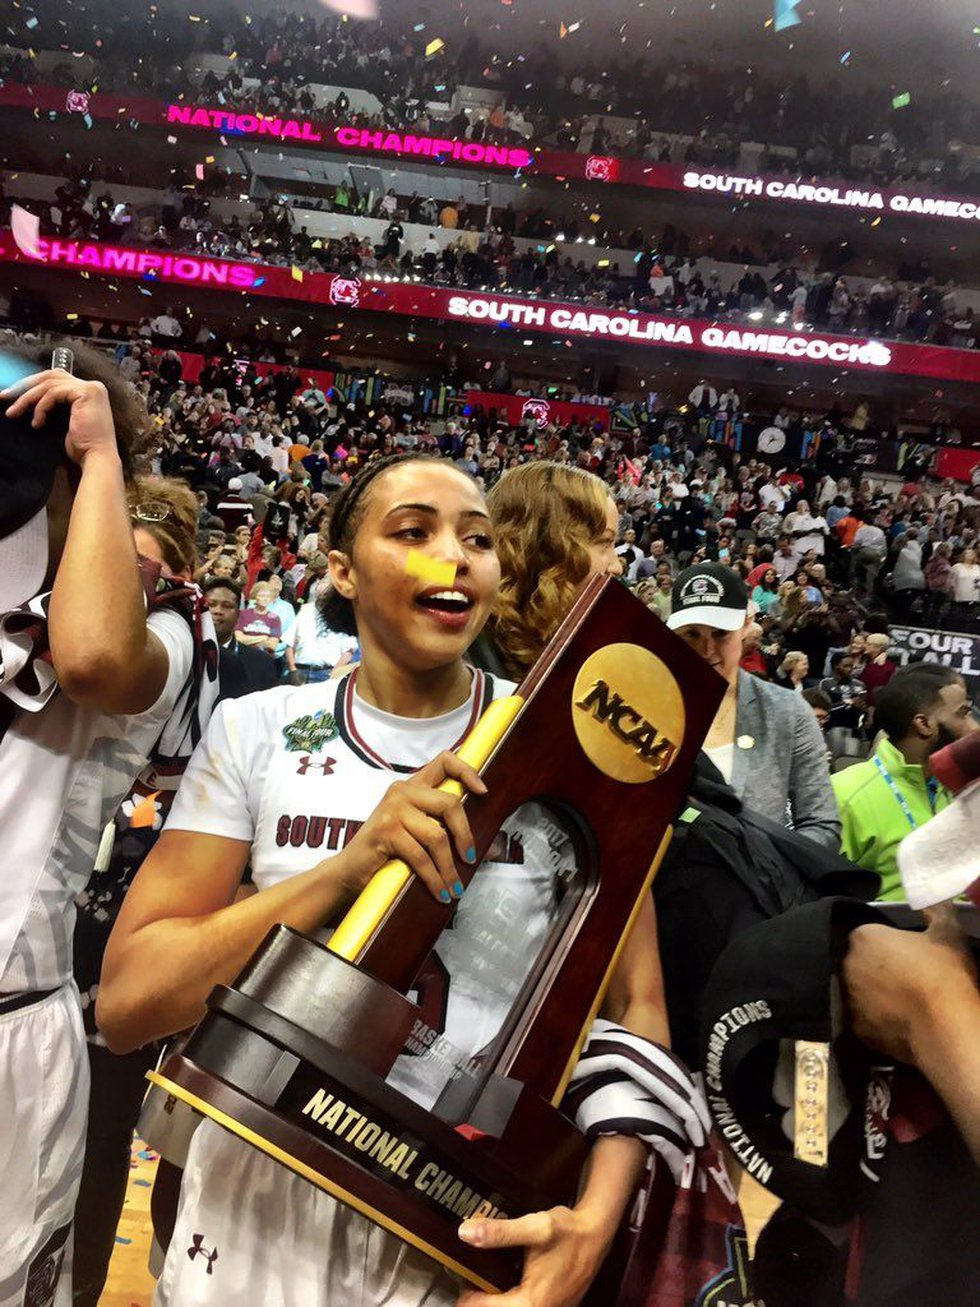 The National Championship trophy is in the hand of the Gamecocks! (Source: Gamecocks Athletics)